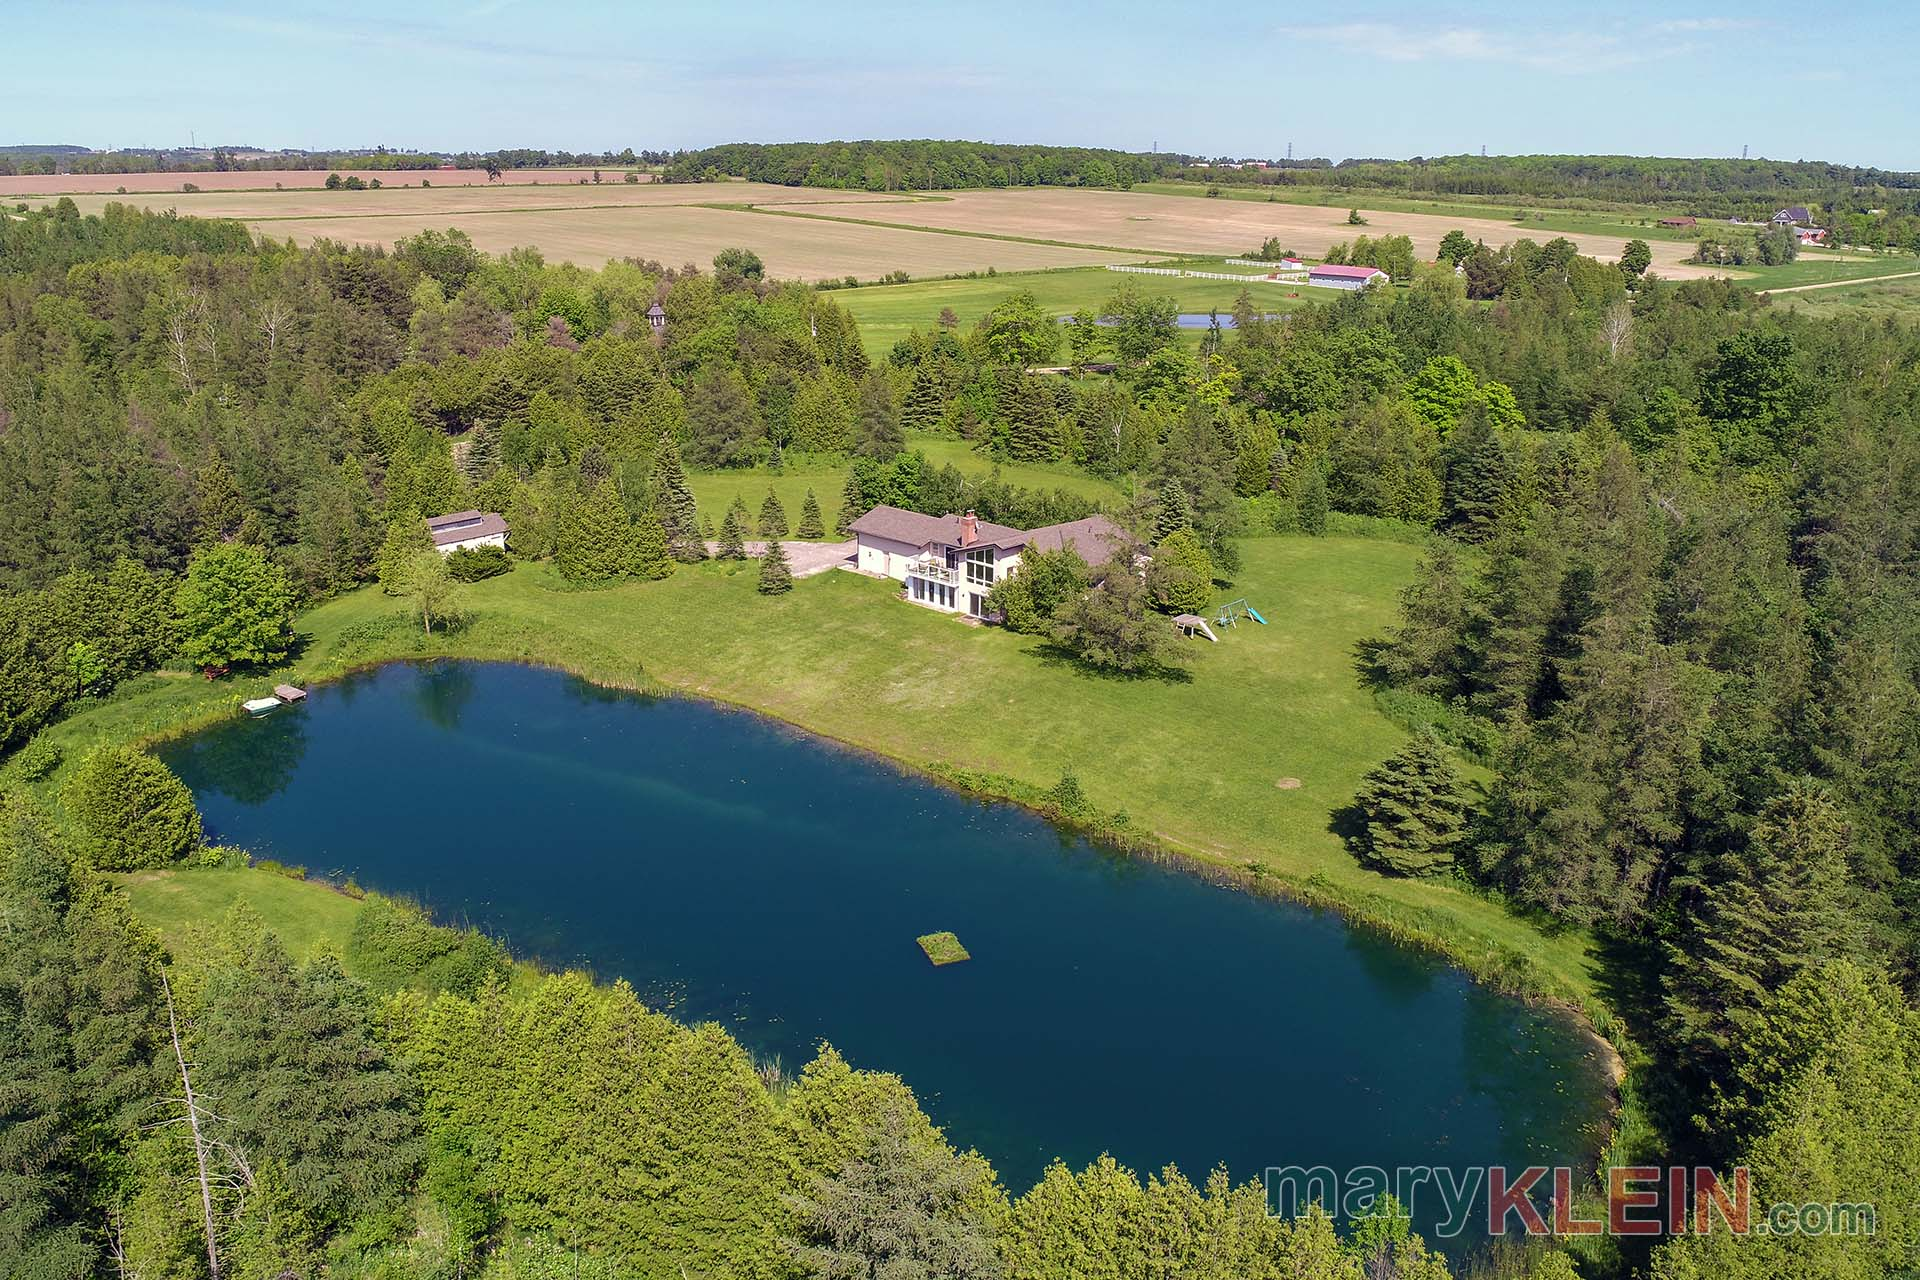 3 1 Bedroom Bungalow On 8 1 Acres W Pond For Sale Klein